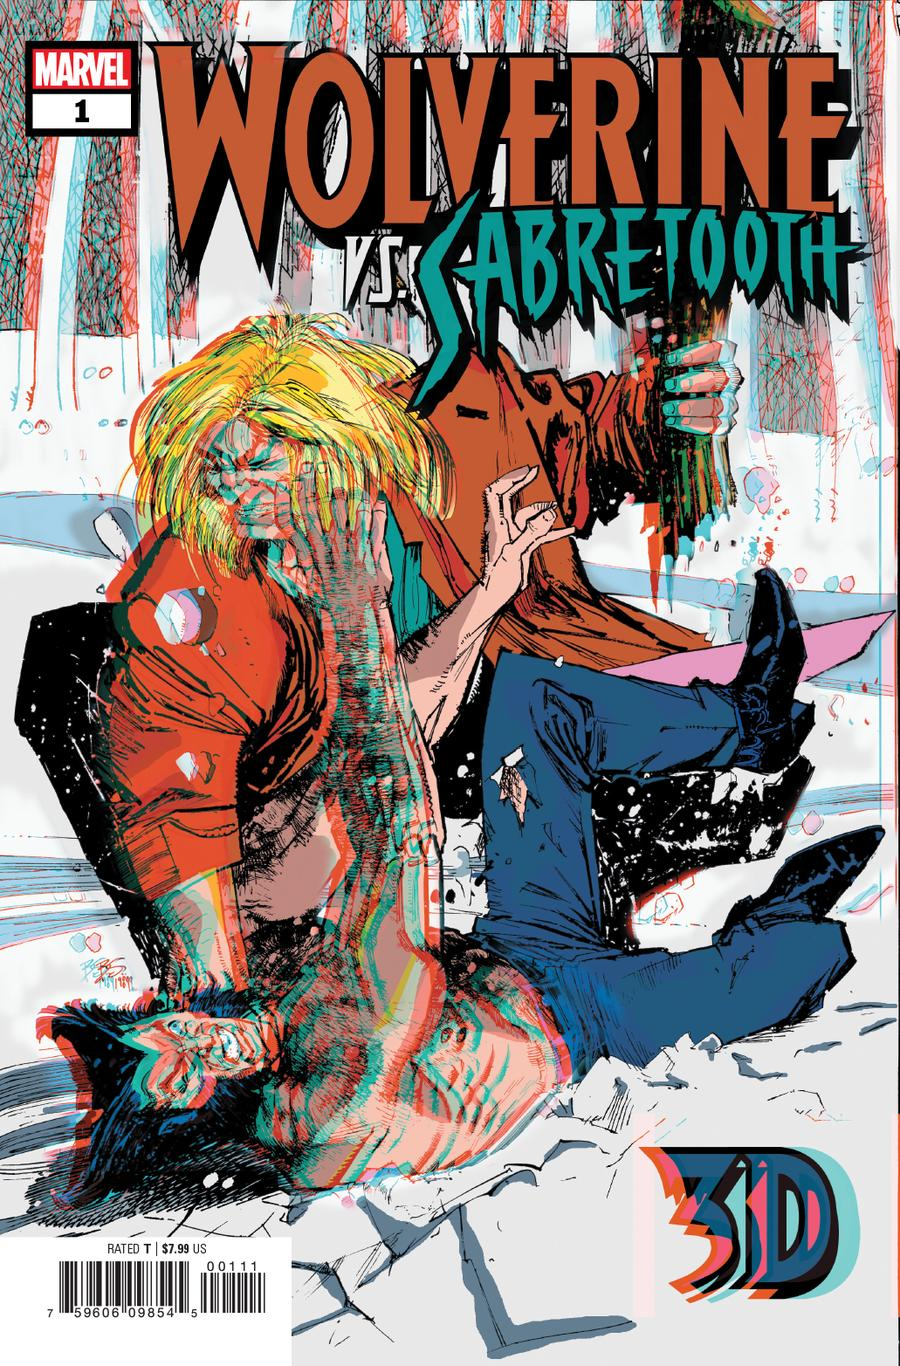 Wolverine vs Sabretooth 3D #1 Cover A With Polybag